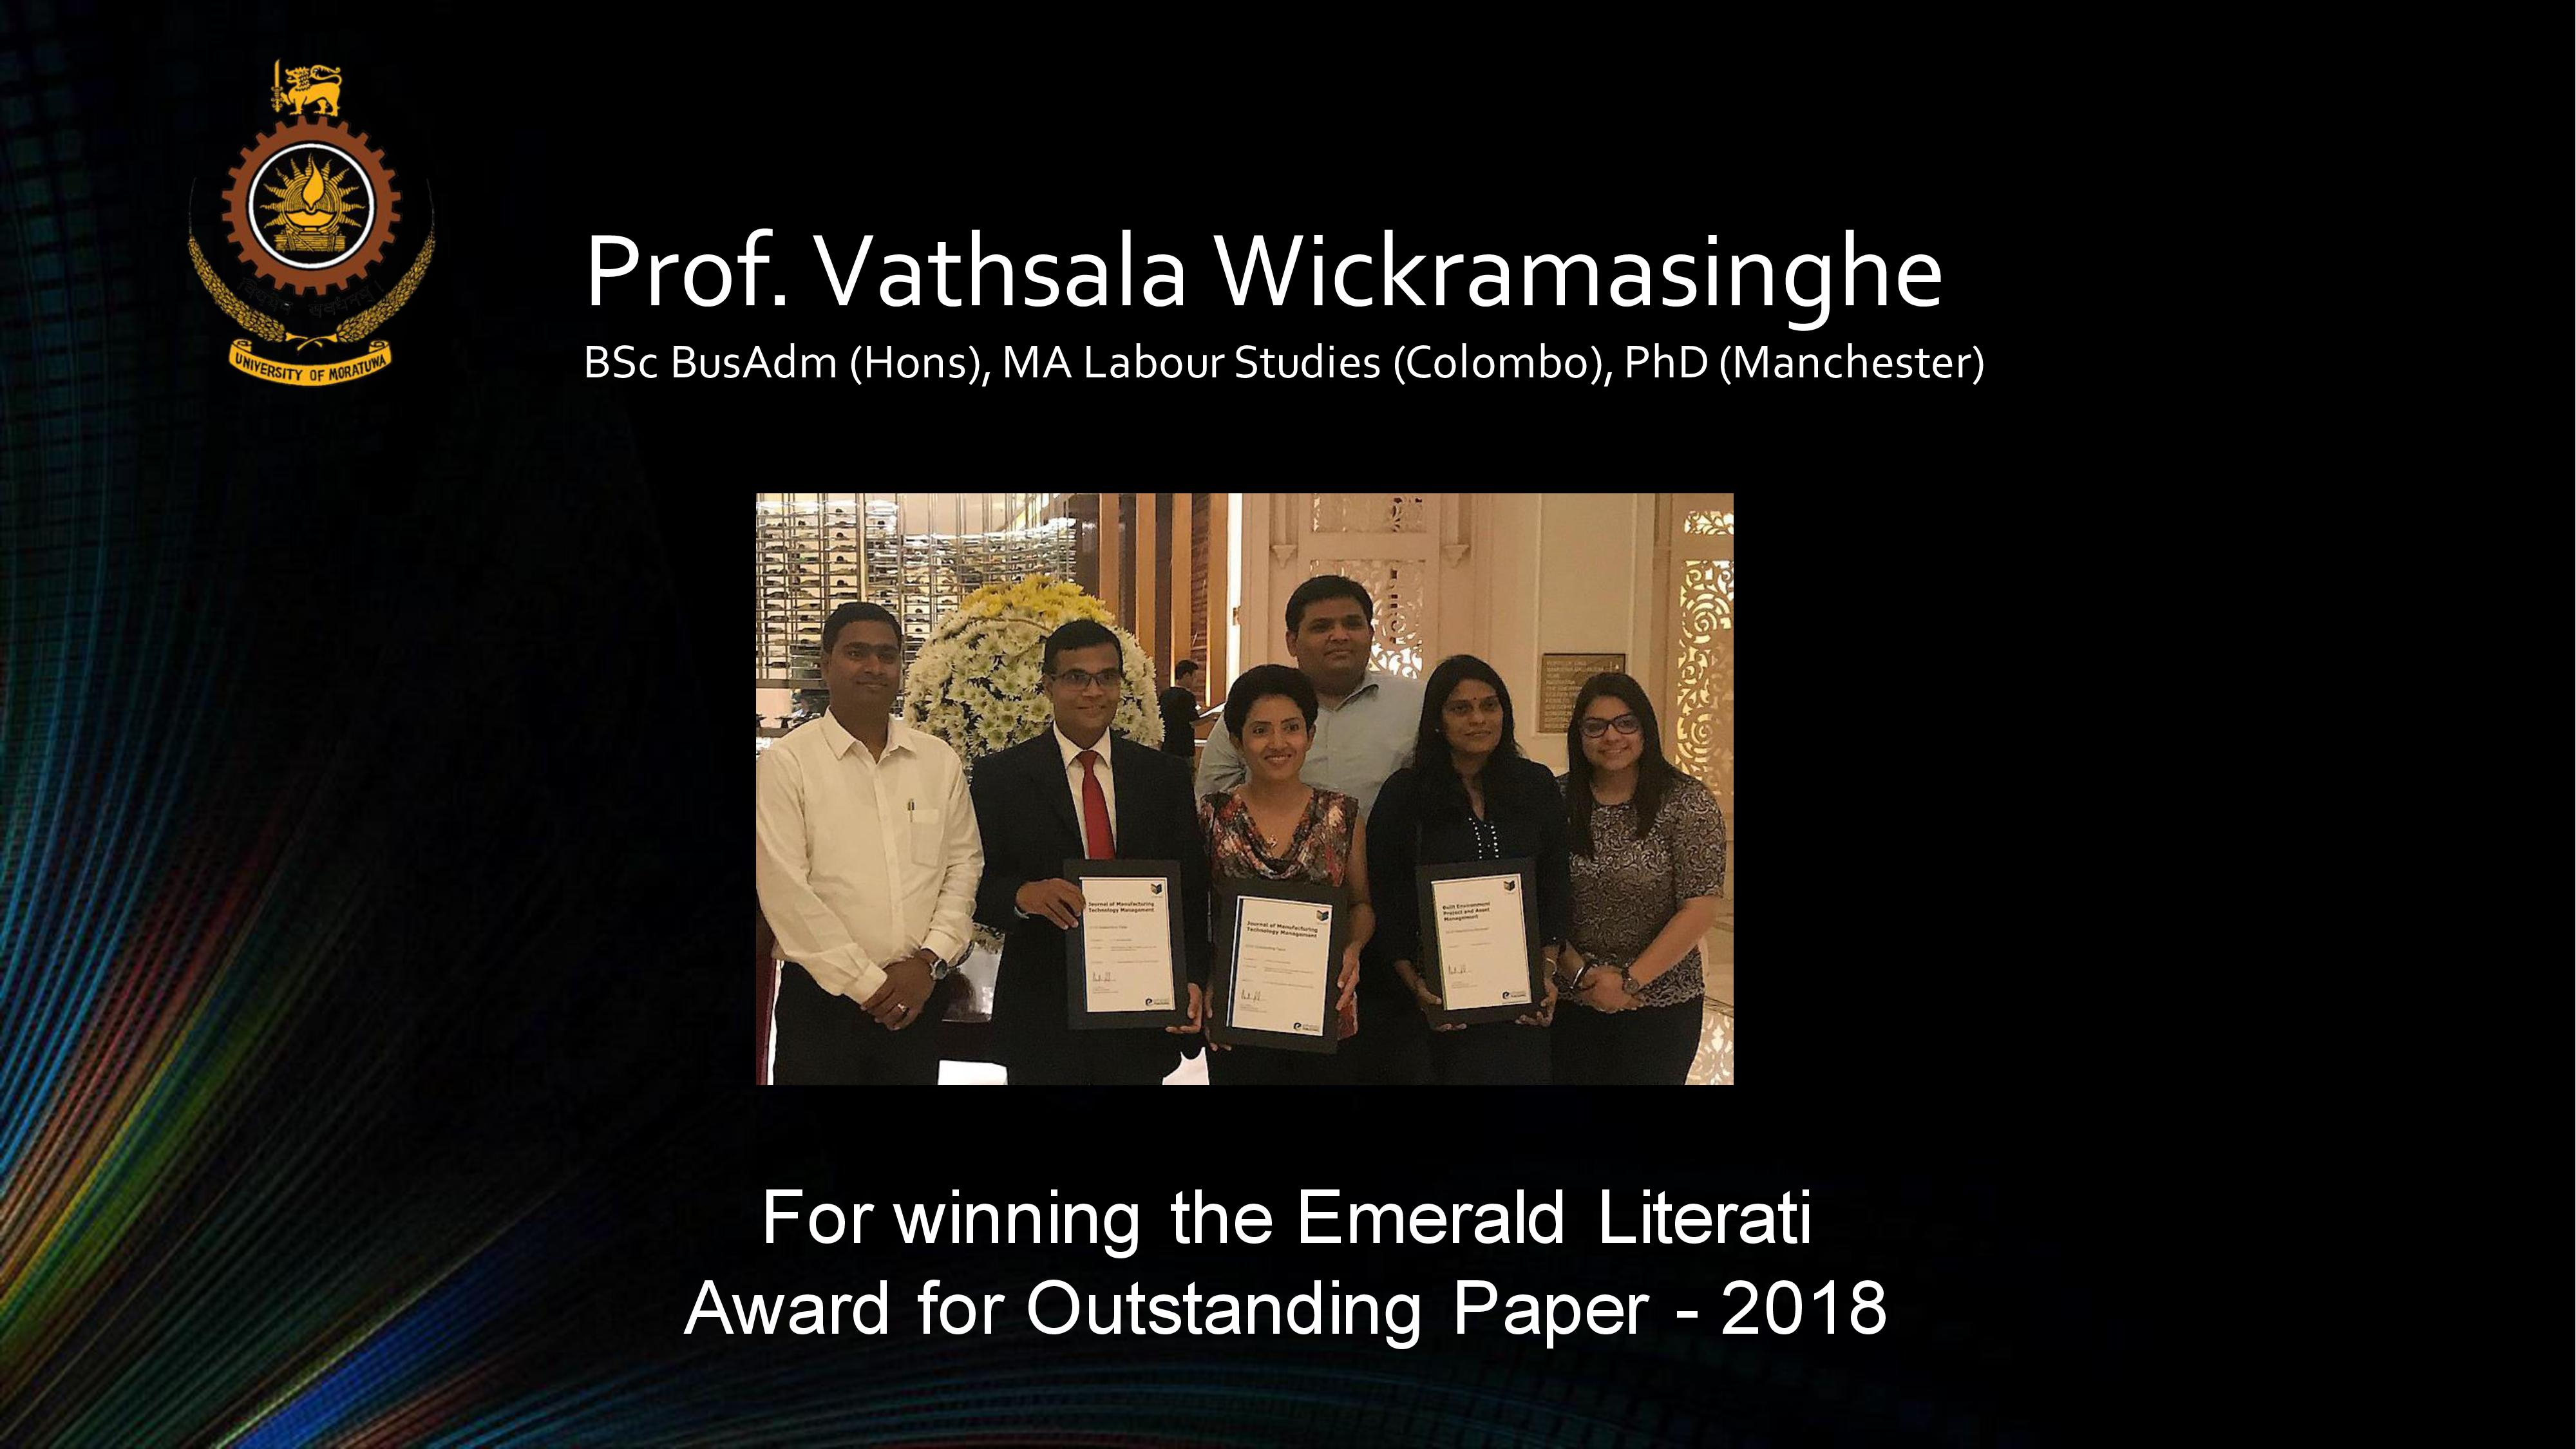 Winner of the Emerald Literati Award for Outstanding Paper 2018